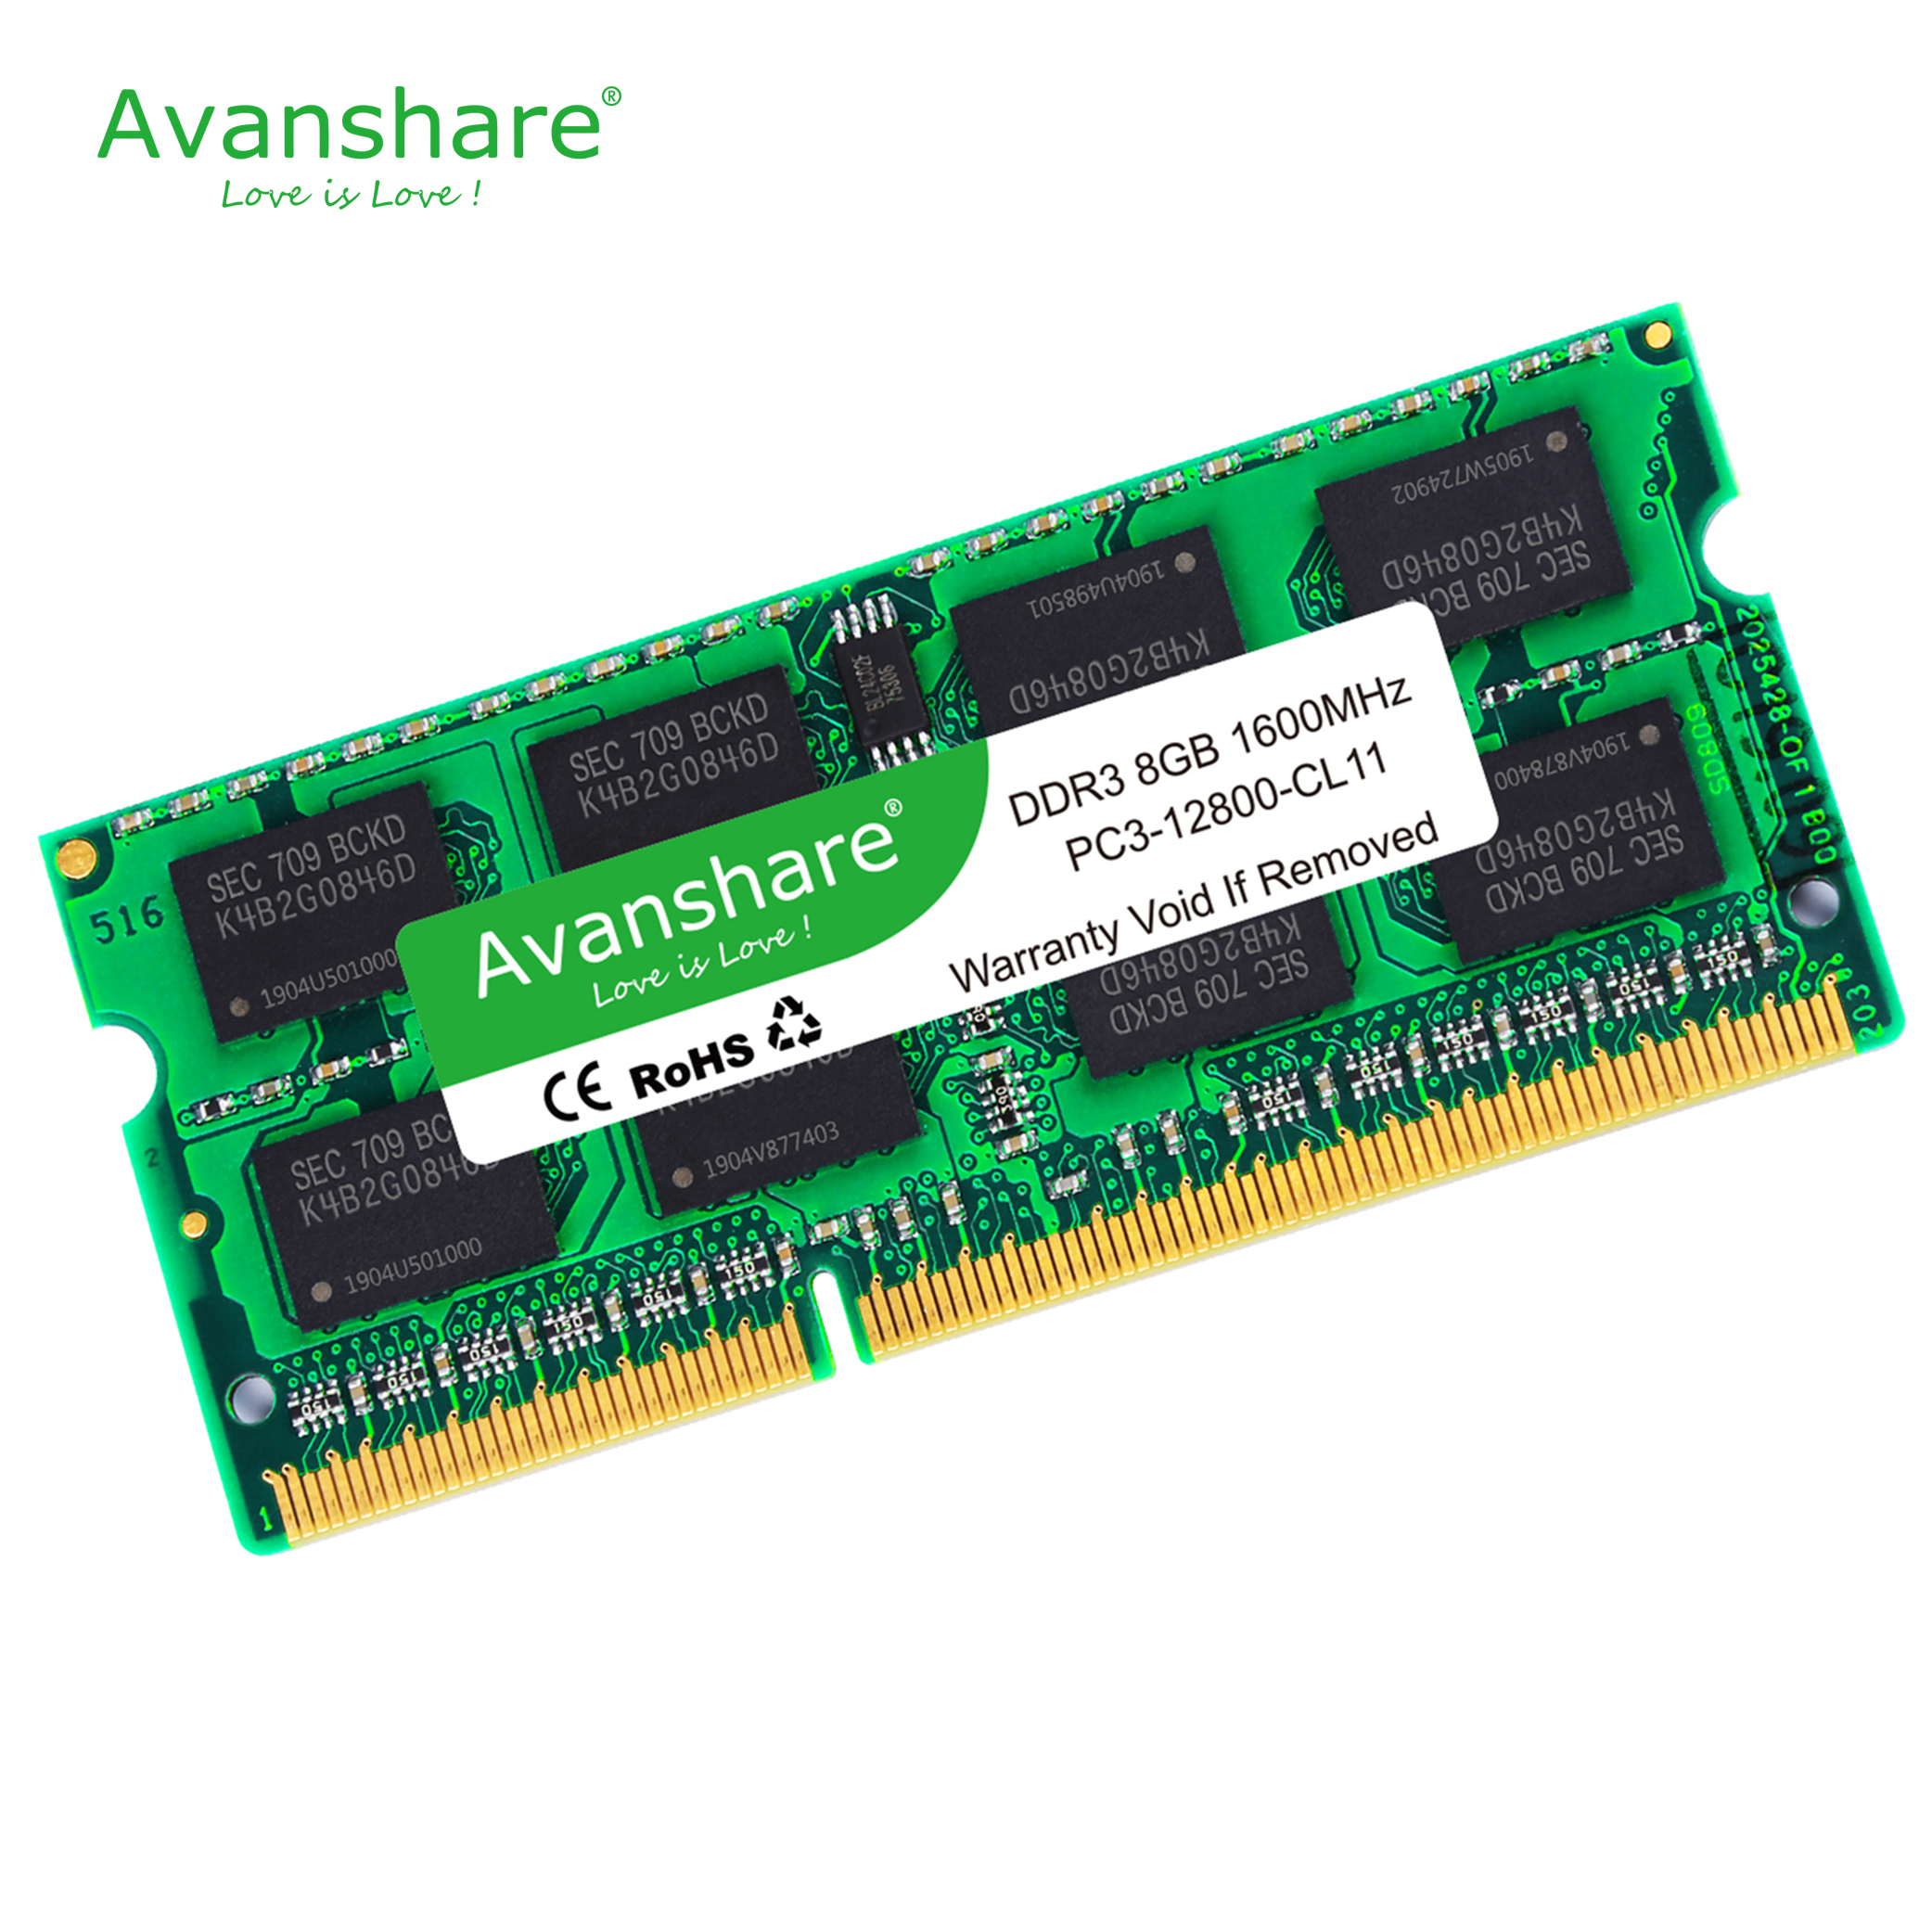 Speicher <font><b>ddr3</b></font> 8gb für laptop 1600MHz <font><b>sodimm</b></font> macbook <font><b>ram</b></font> ddr3l 1600 kompatibel <font><b>ddr3</b></font> laptop 4gb 1333MHz sdram 1066mhz durch Avanshare image